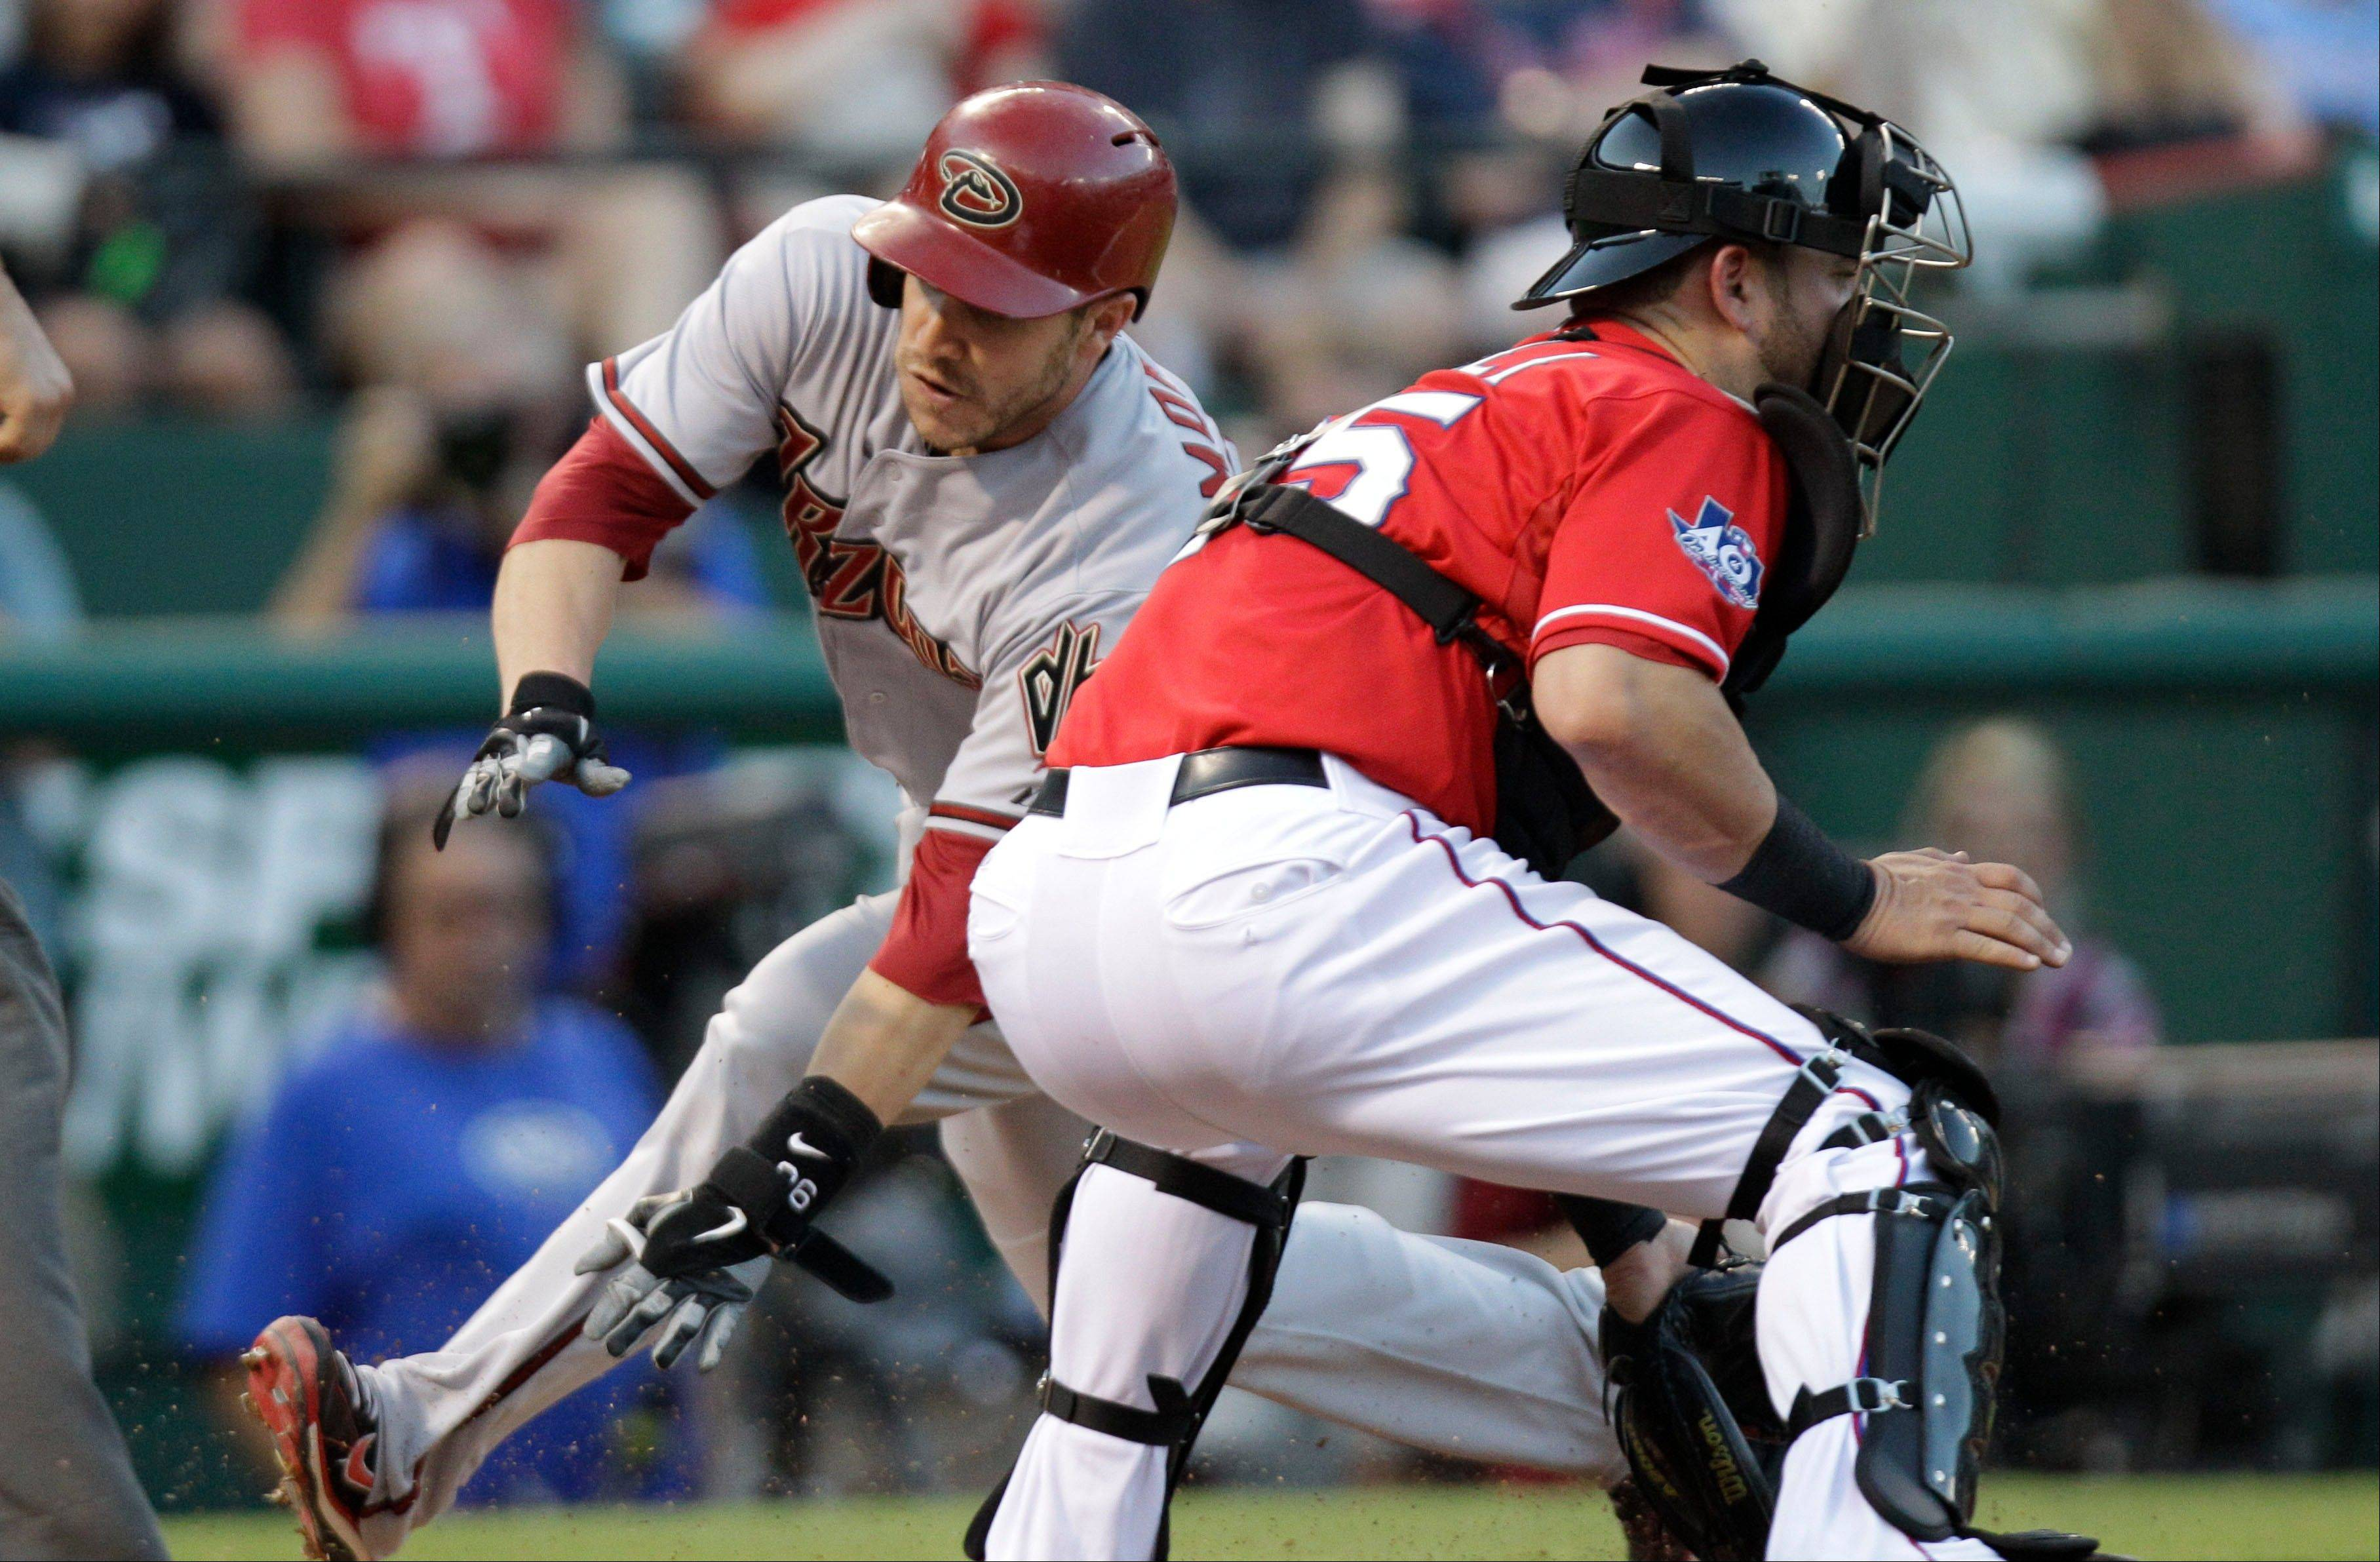 Arizona's Miguel Montero scores before Rangers catcher Mike Napoli gets the ball in the third inning Thursday in Arlington, Texas.